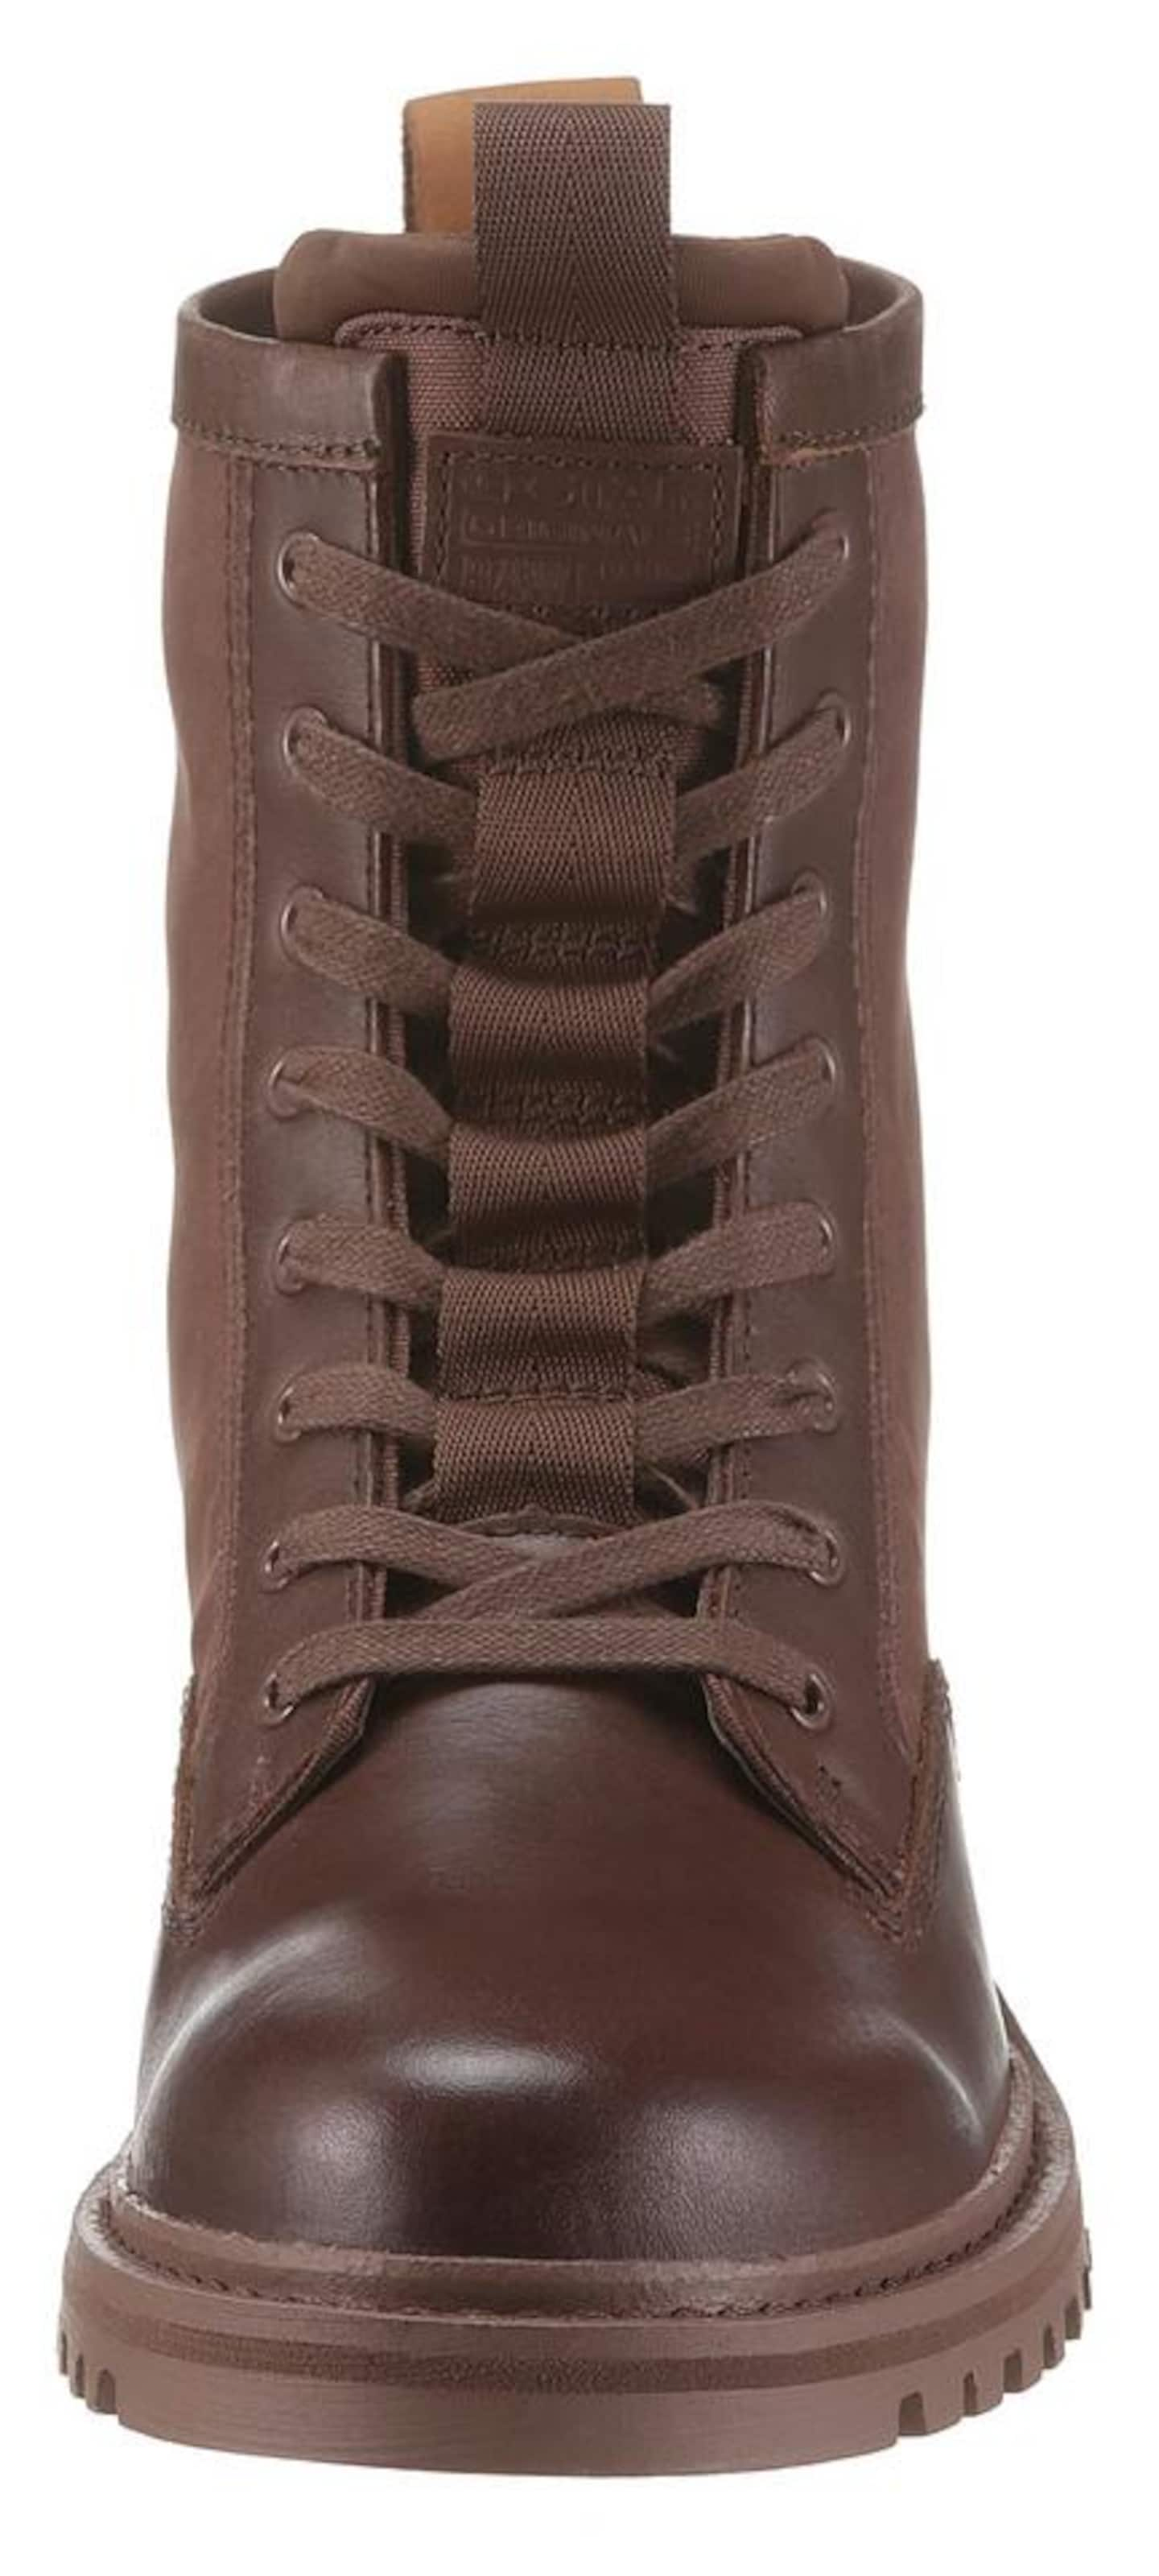 Bottes 'core' Lacets En À Raw G Marron star 5jR34LA